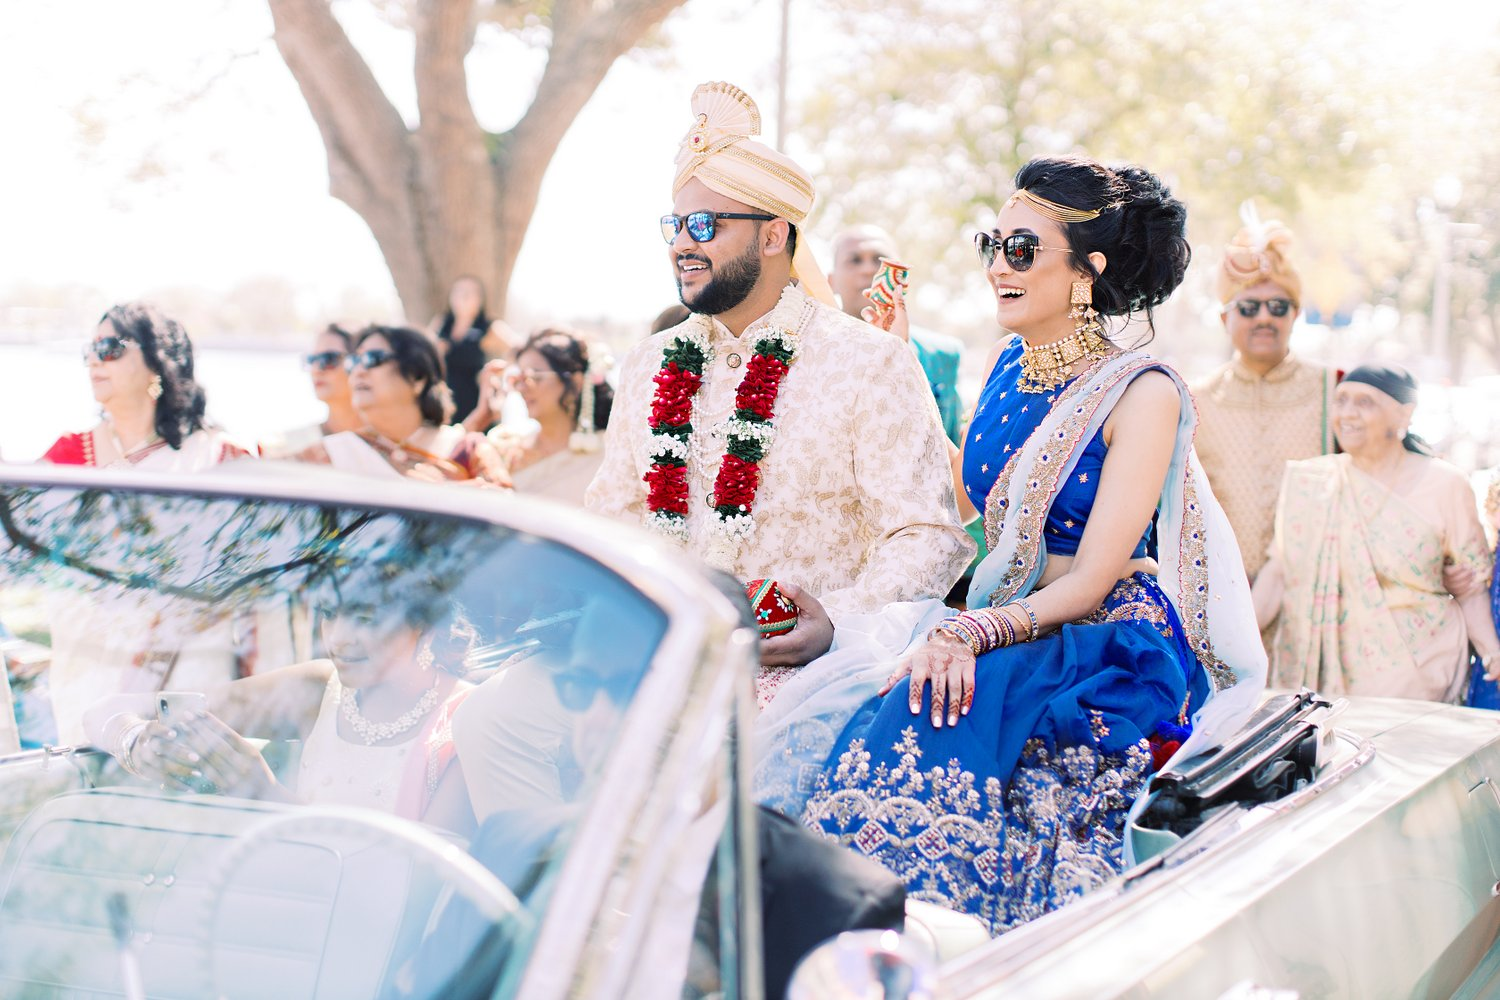 If vintage cars have always been your thing, then lead your baraat procession in one stunning vintage vehicle!, Miami Wedding Photographers | Häring Photography, Indian Wedding Photographer in Florida, Best Muslim, Hindu - South East Asian Wedding Photographers